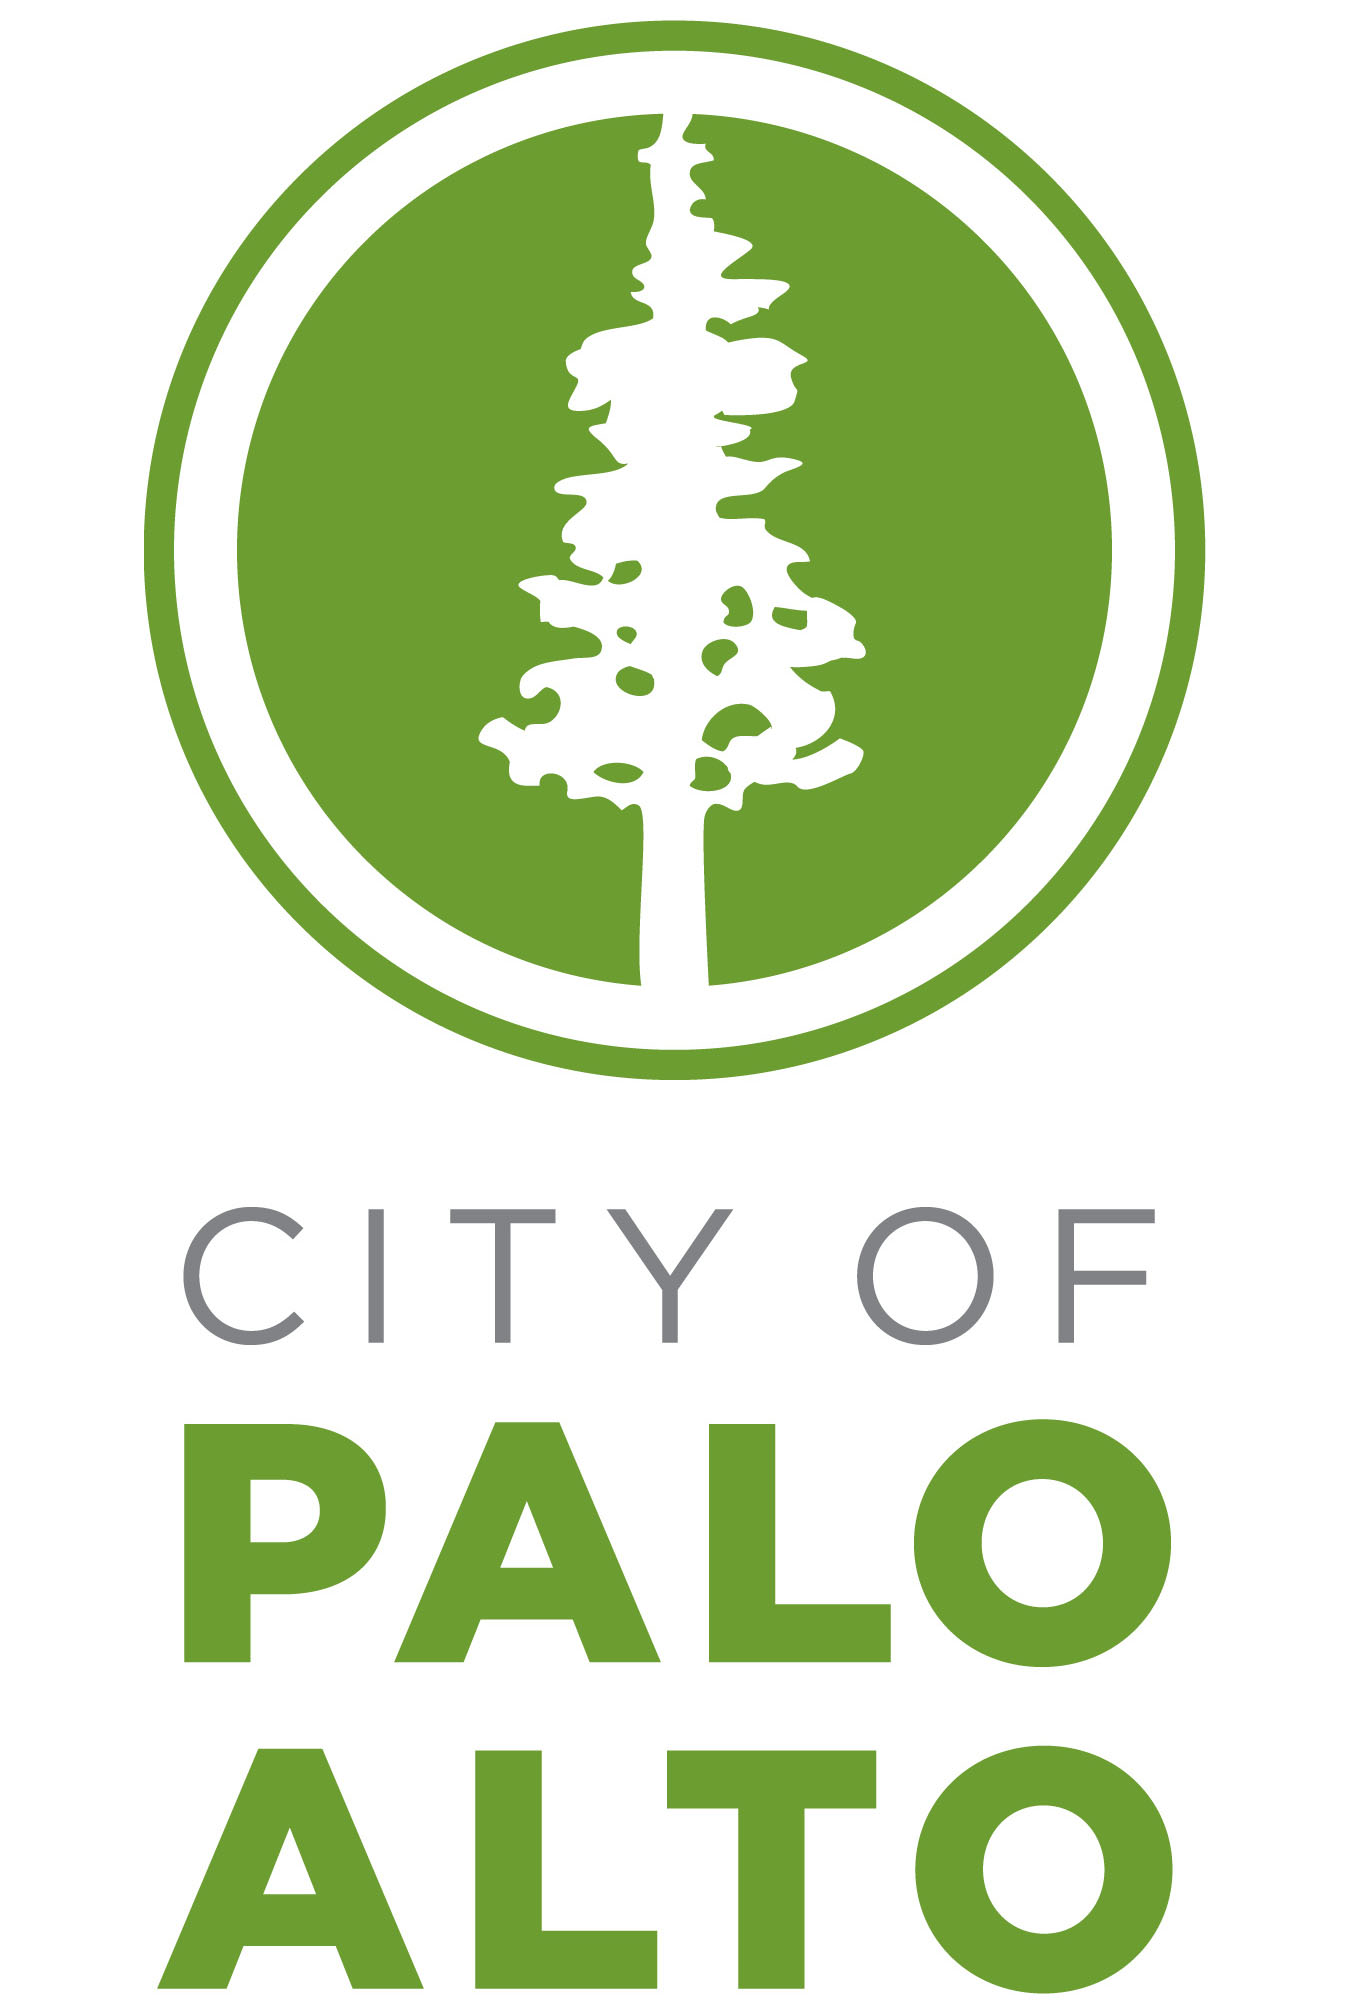 City-of-Palo-Alto-logo-big.jpg